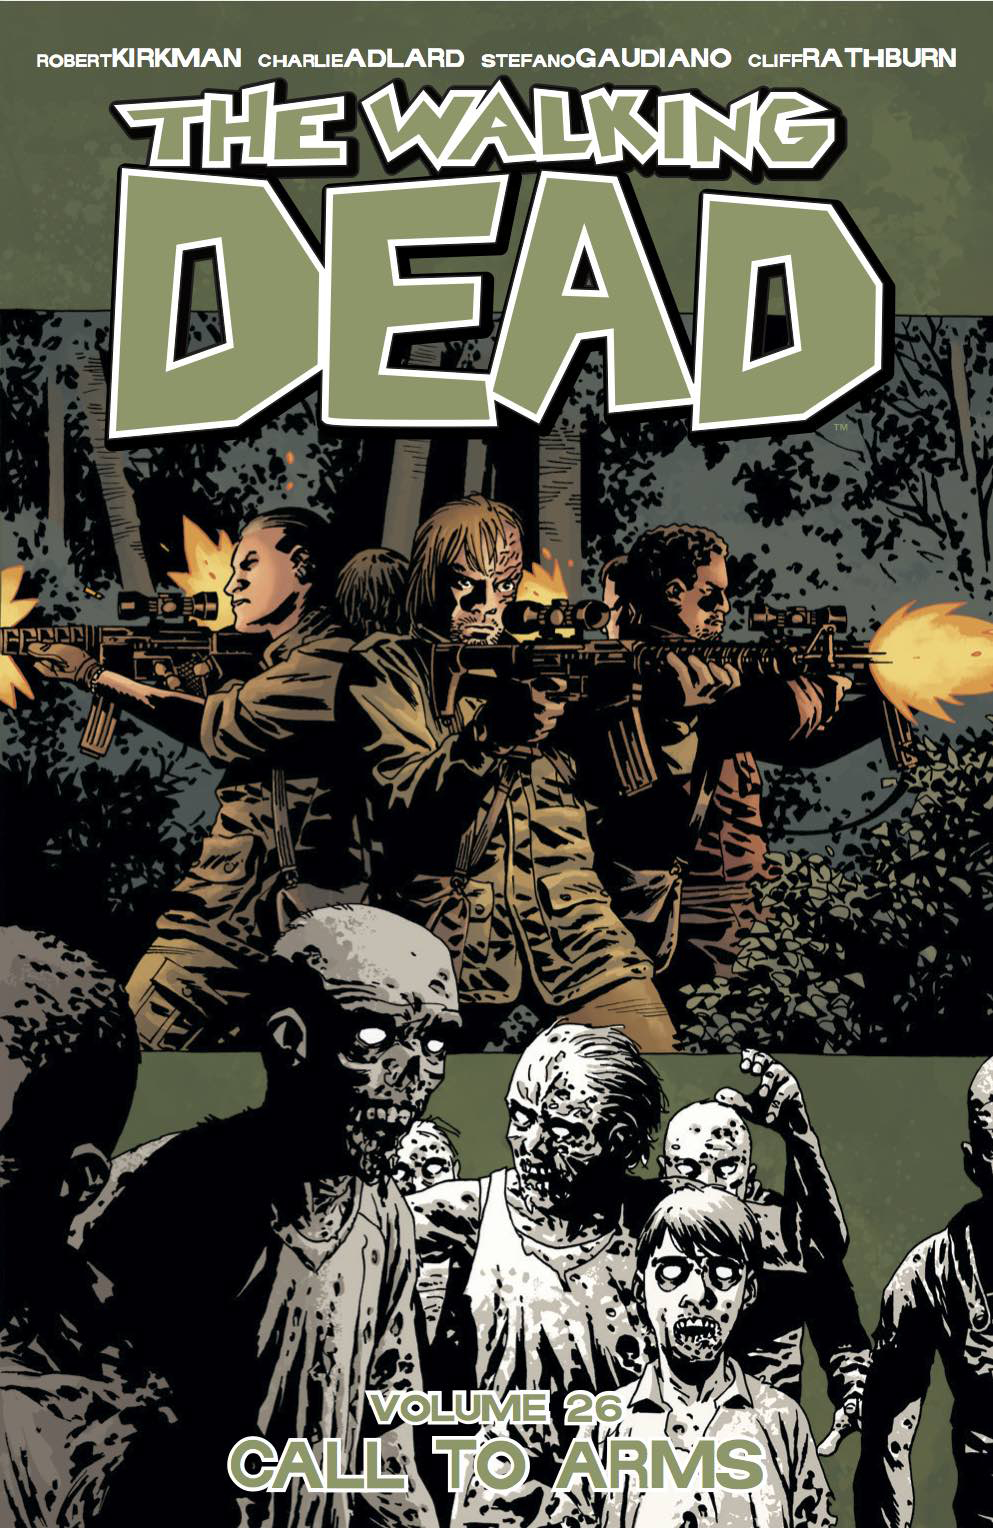 WALKING DEAD TP VOL 26 CALL TO ARMS (JUN160722) (MR)